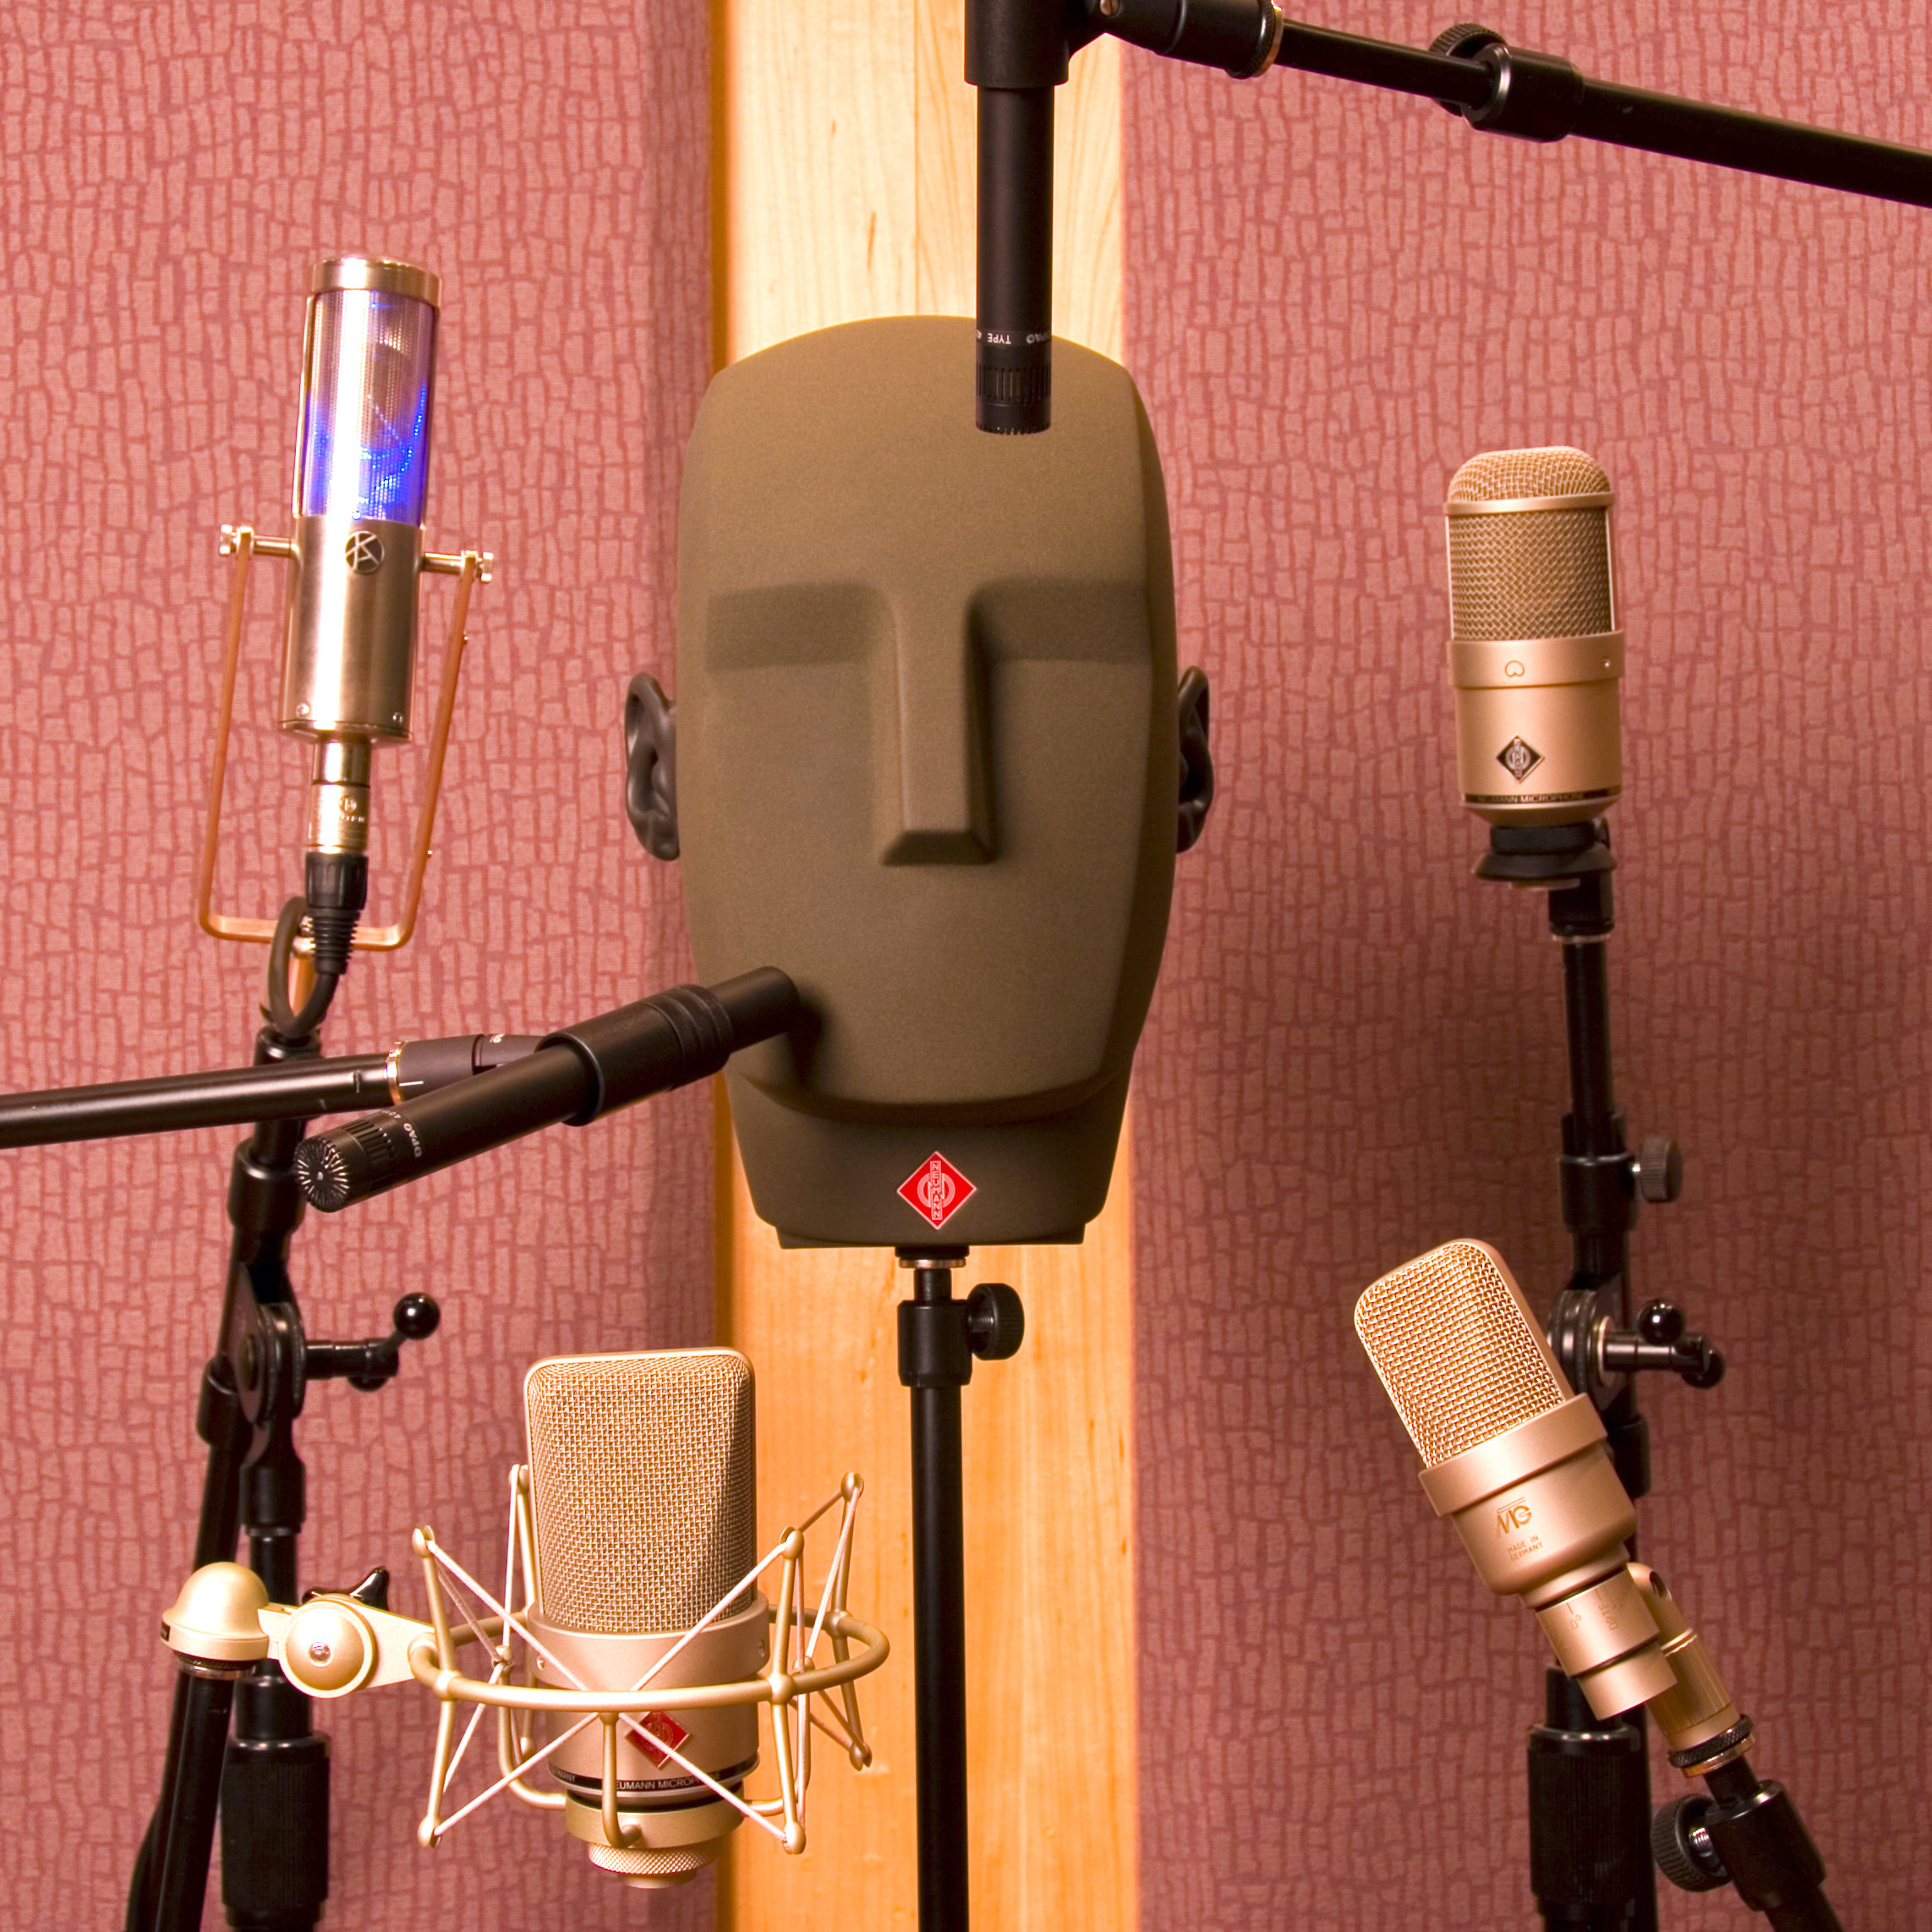 close-up image of a test mannequin with 6 microphones